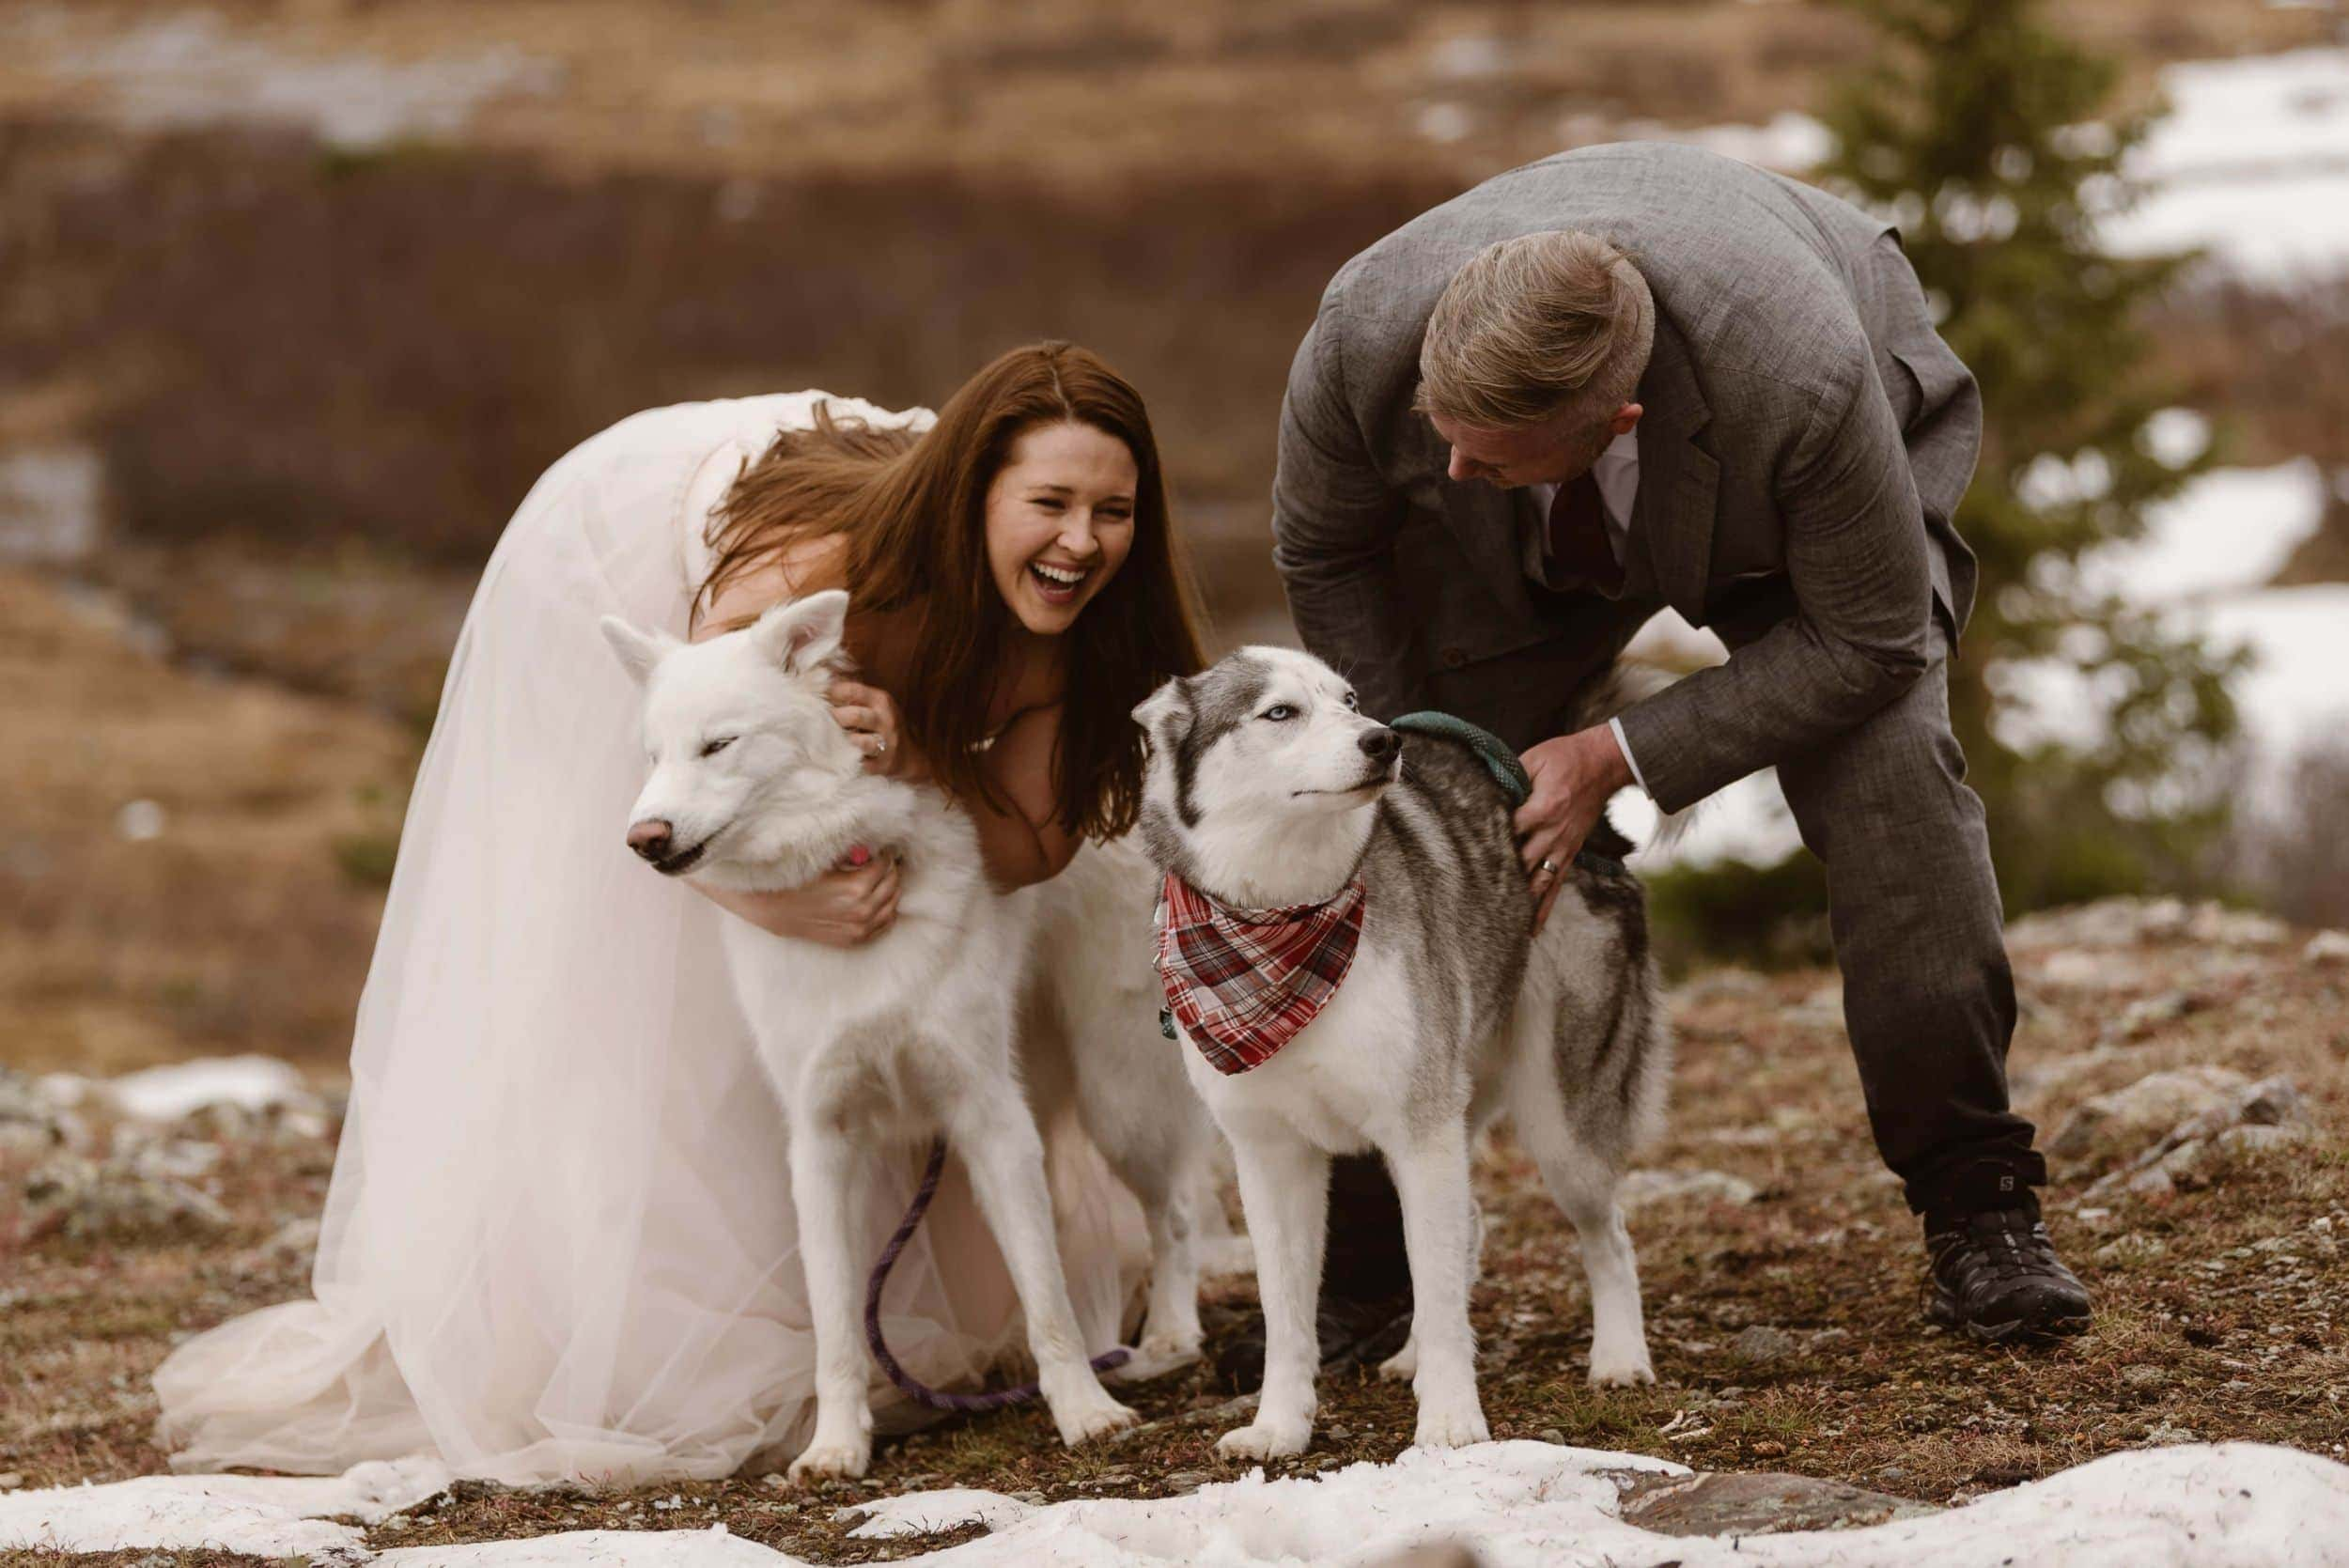 Bride and groom smile and lean forward to pet their two dogs.